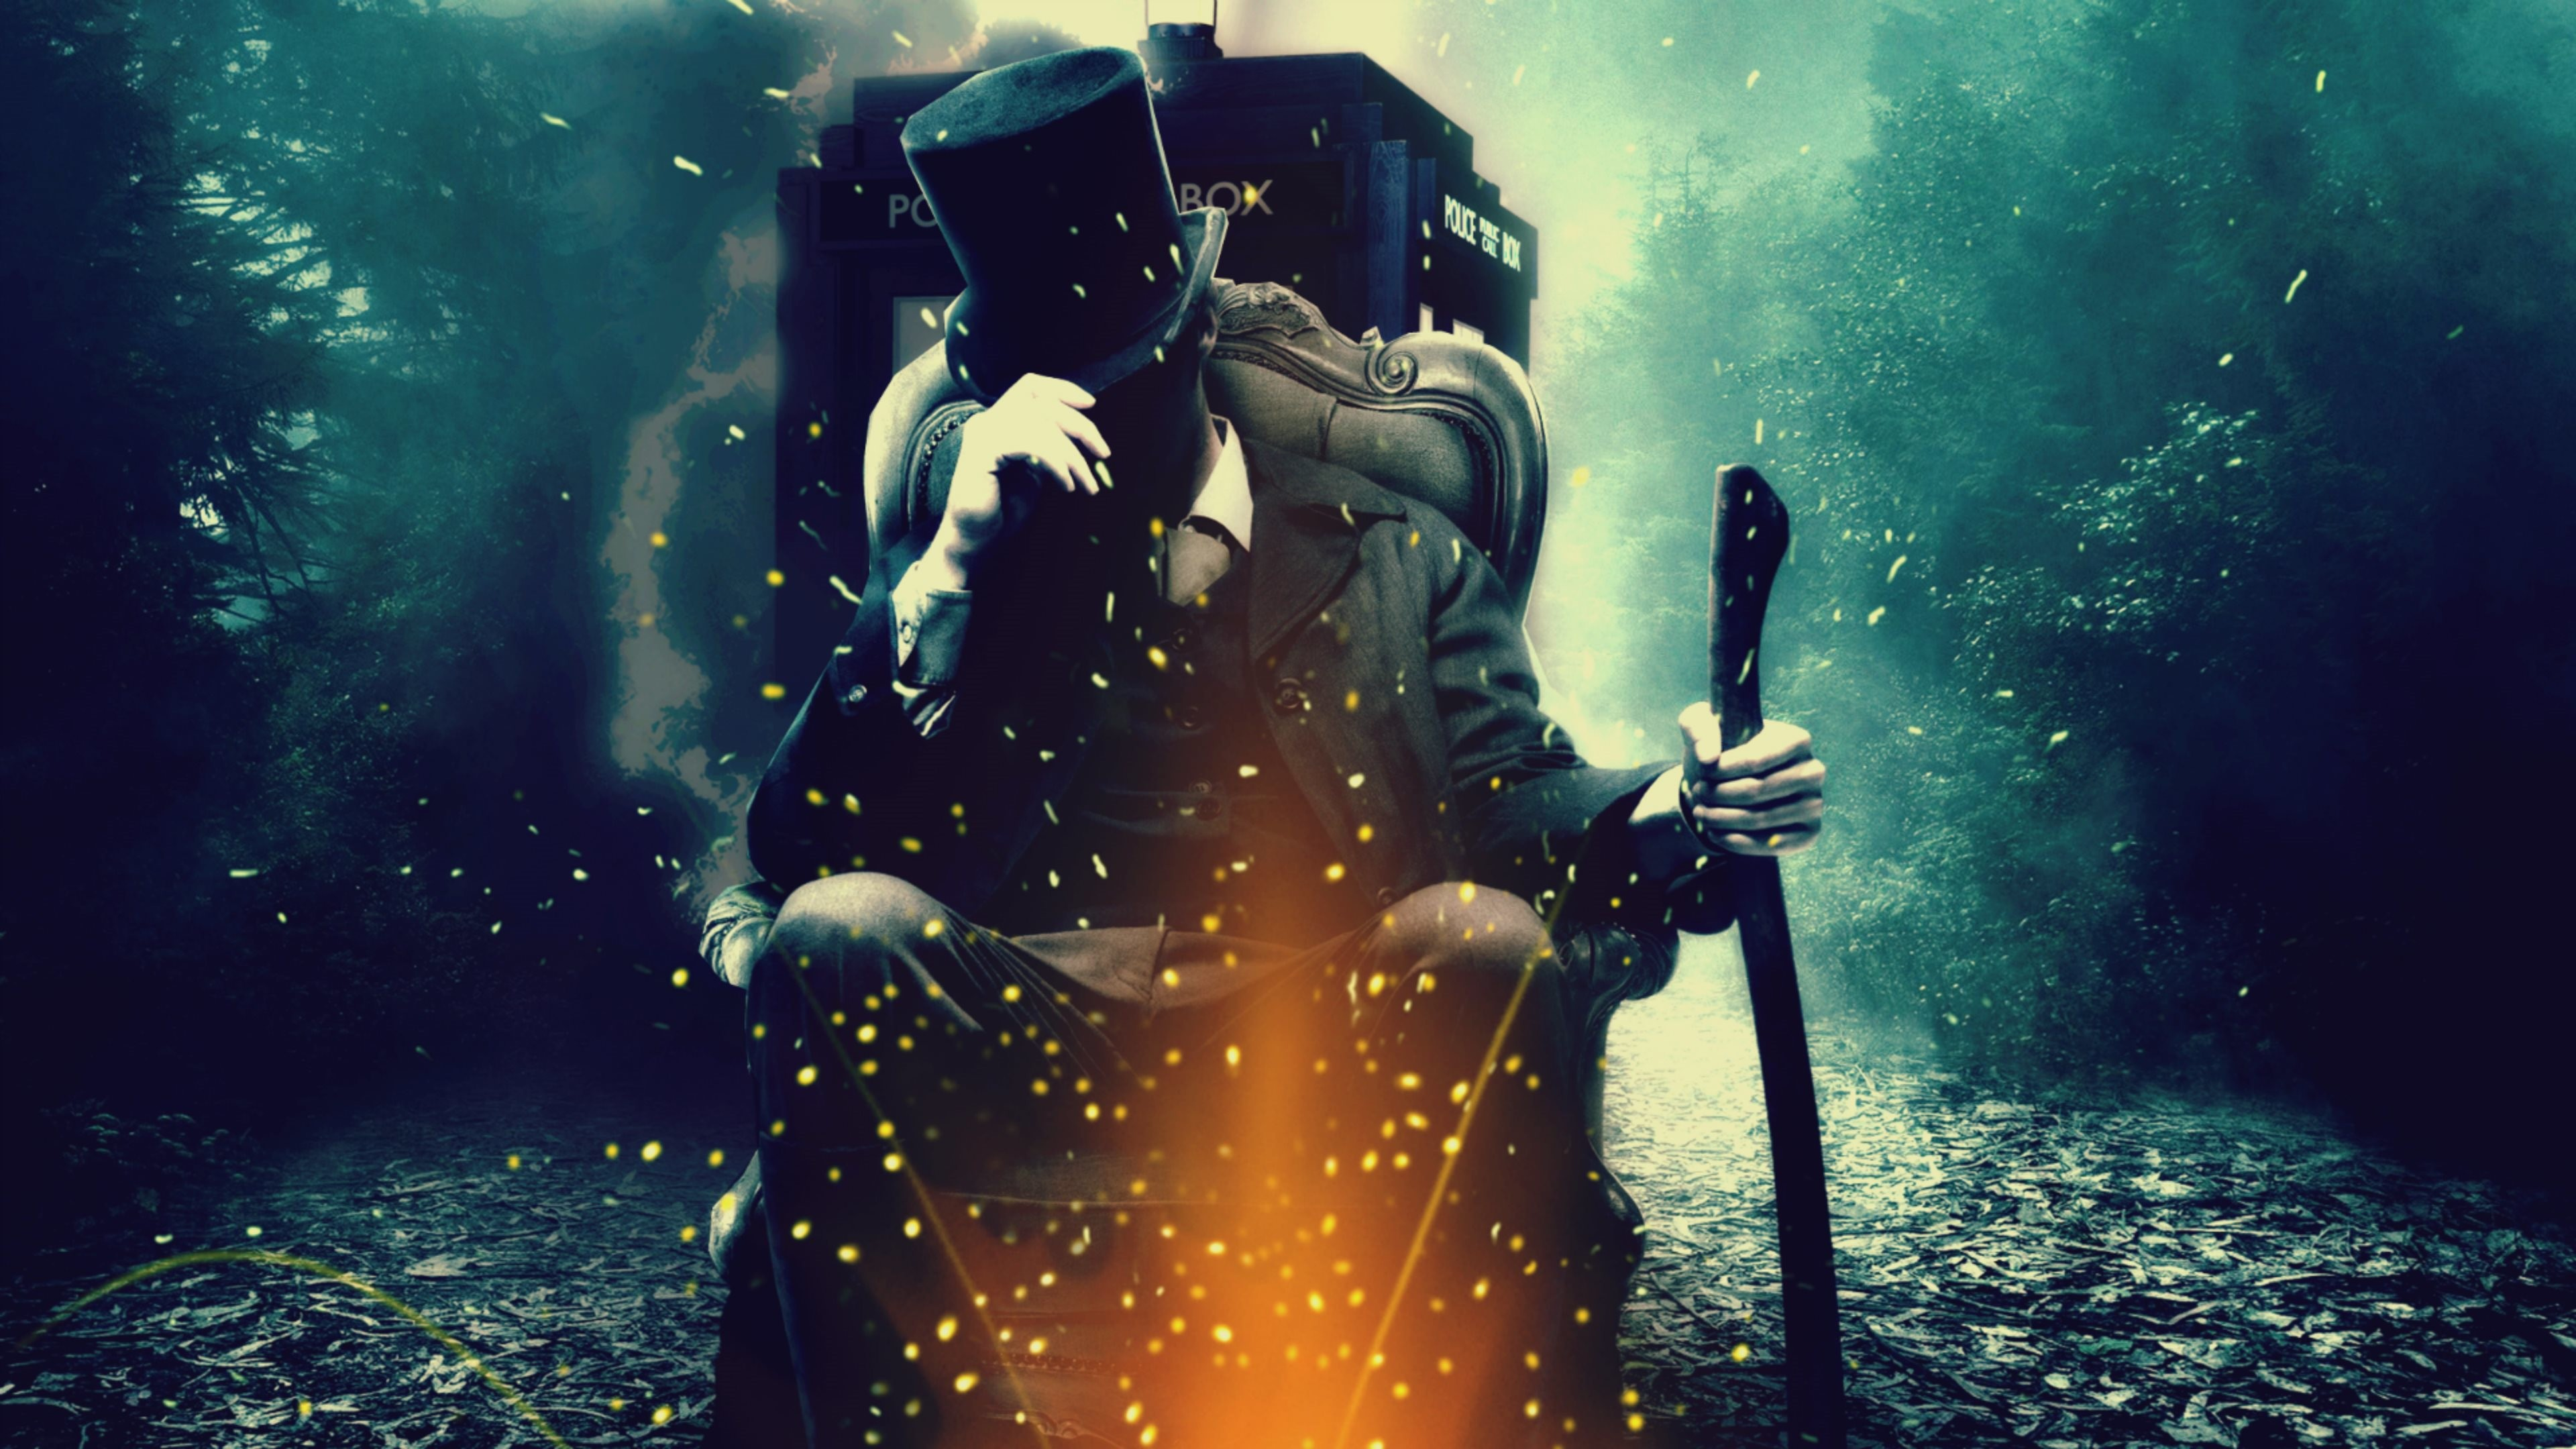 doctor-who-wallpaper-chair